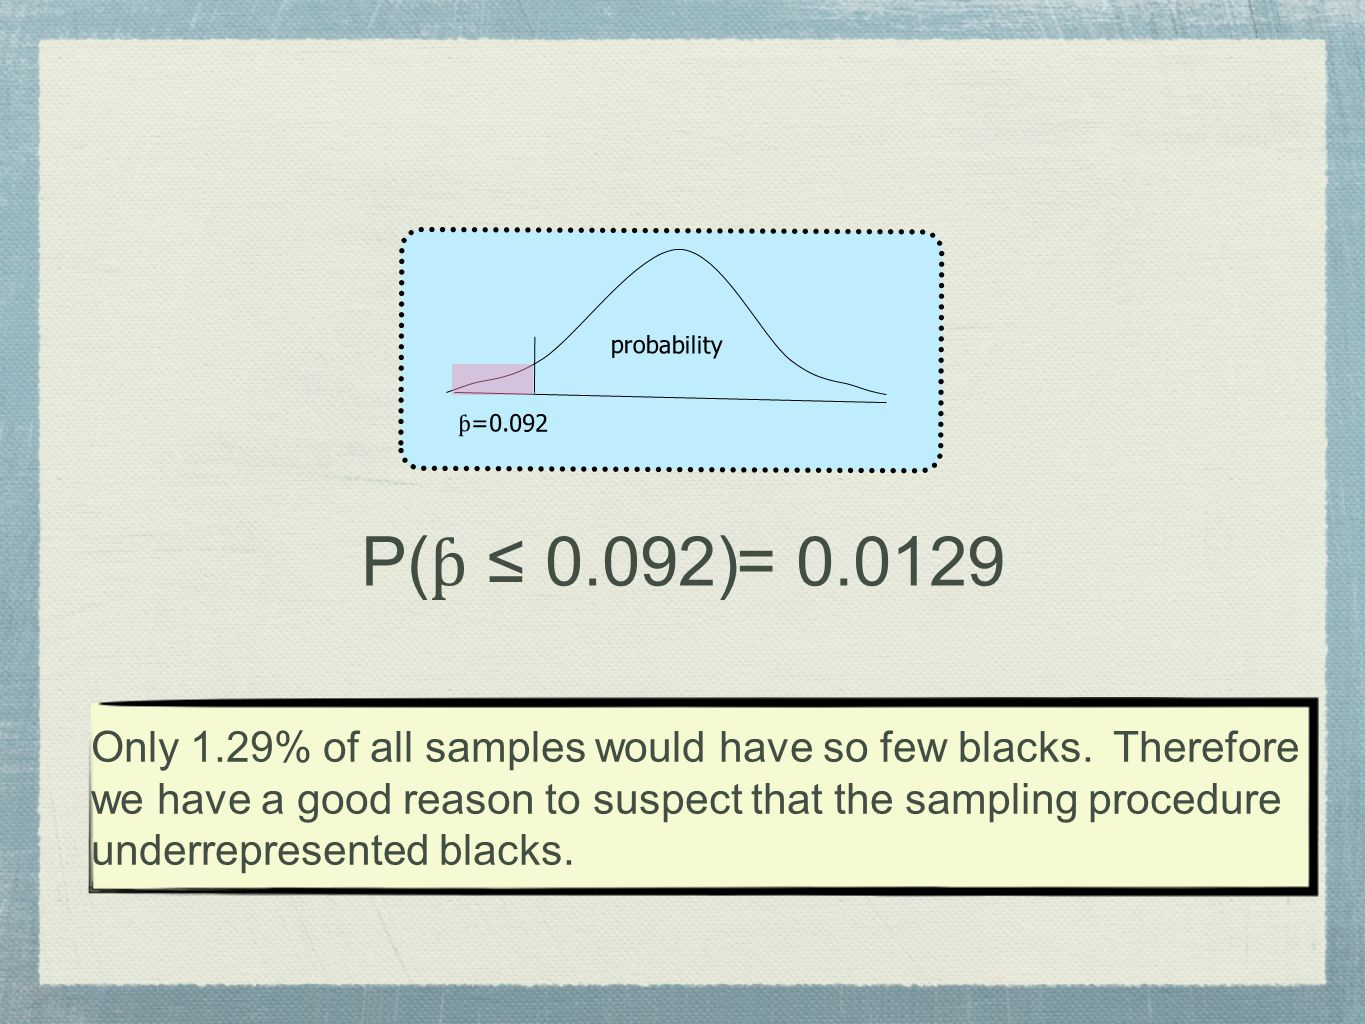 probability ƥ =0.092 P( ƥ 0.092) = 0.0129 Only 1.29% of all samples would have so few blacks. Therefore we have a good reason to suspect that the samp